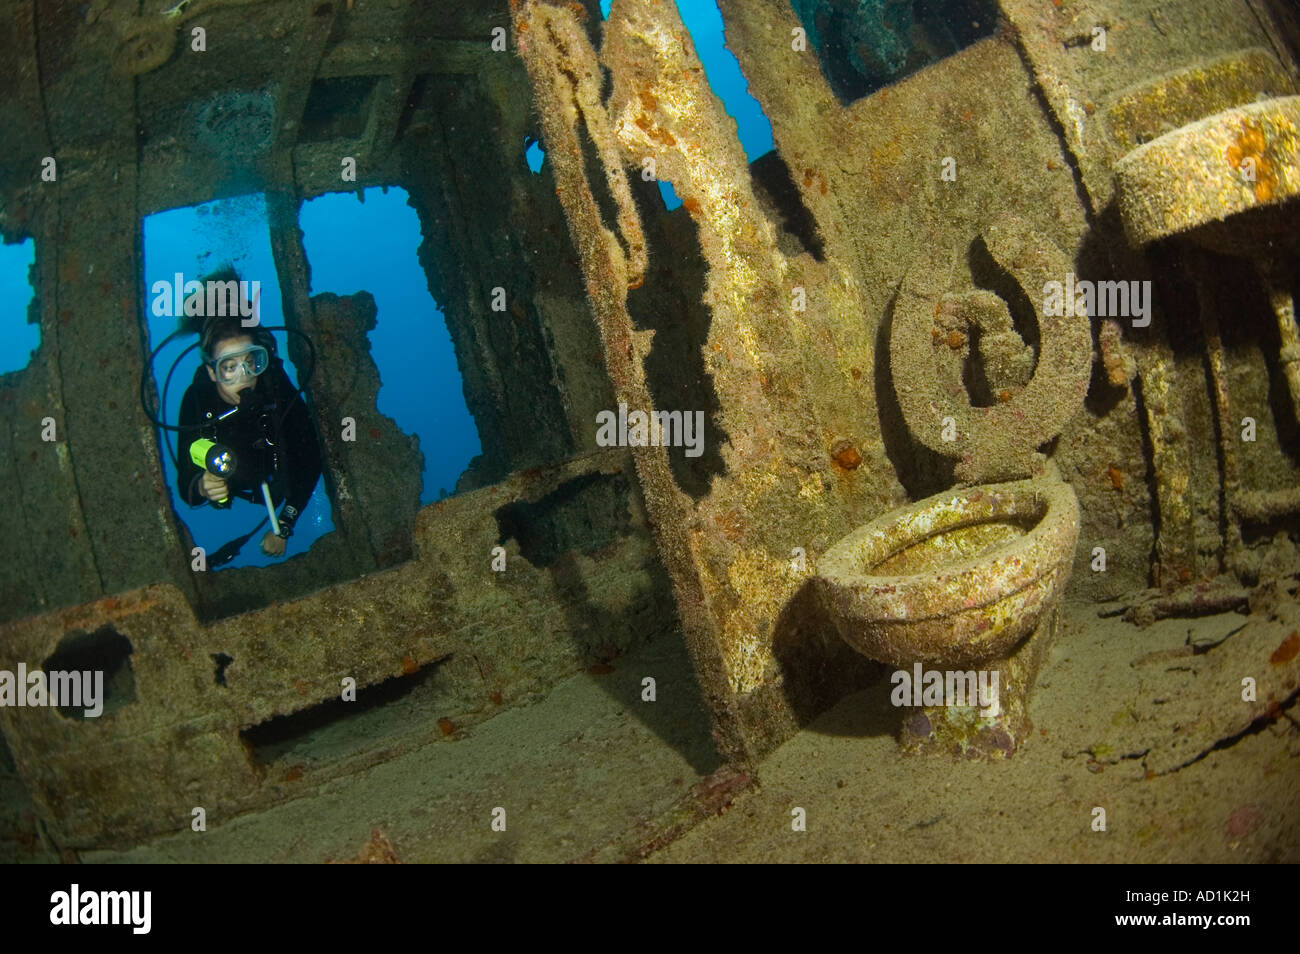 diver in Hermes shipwreck in Bermuda, female diver, underwater, scuba, diving, exploring, exciting, mystery - Stock Image